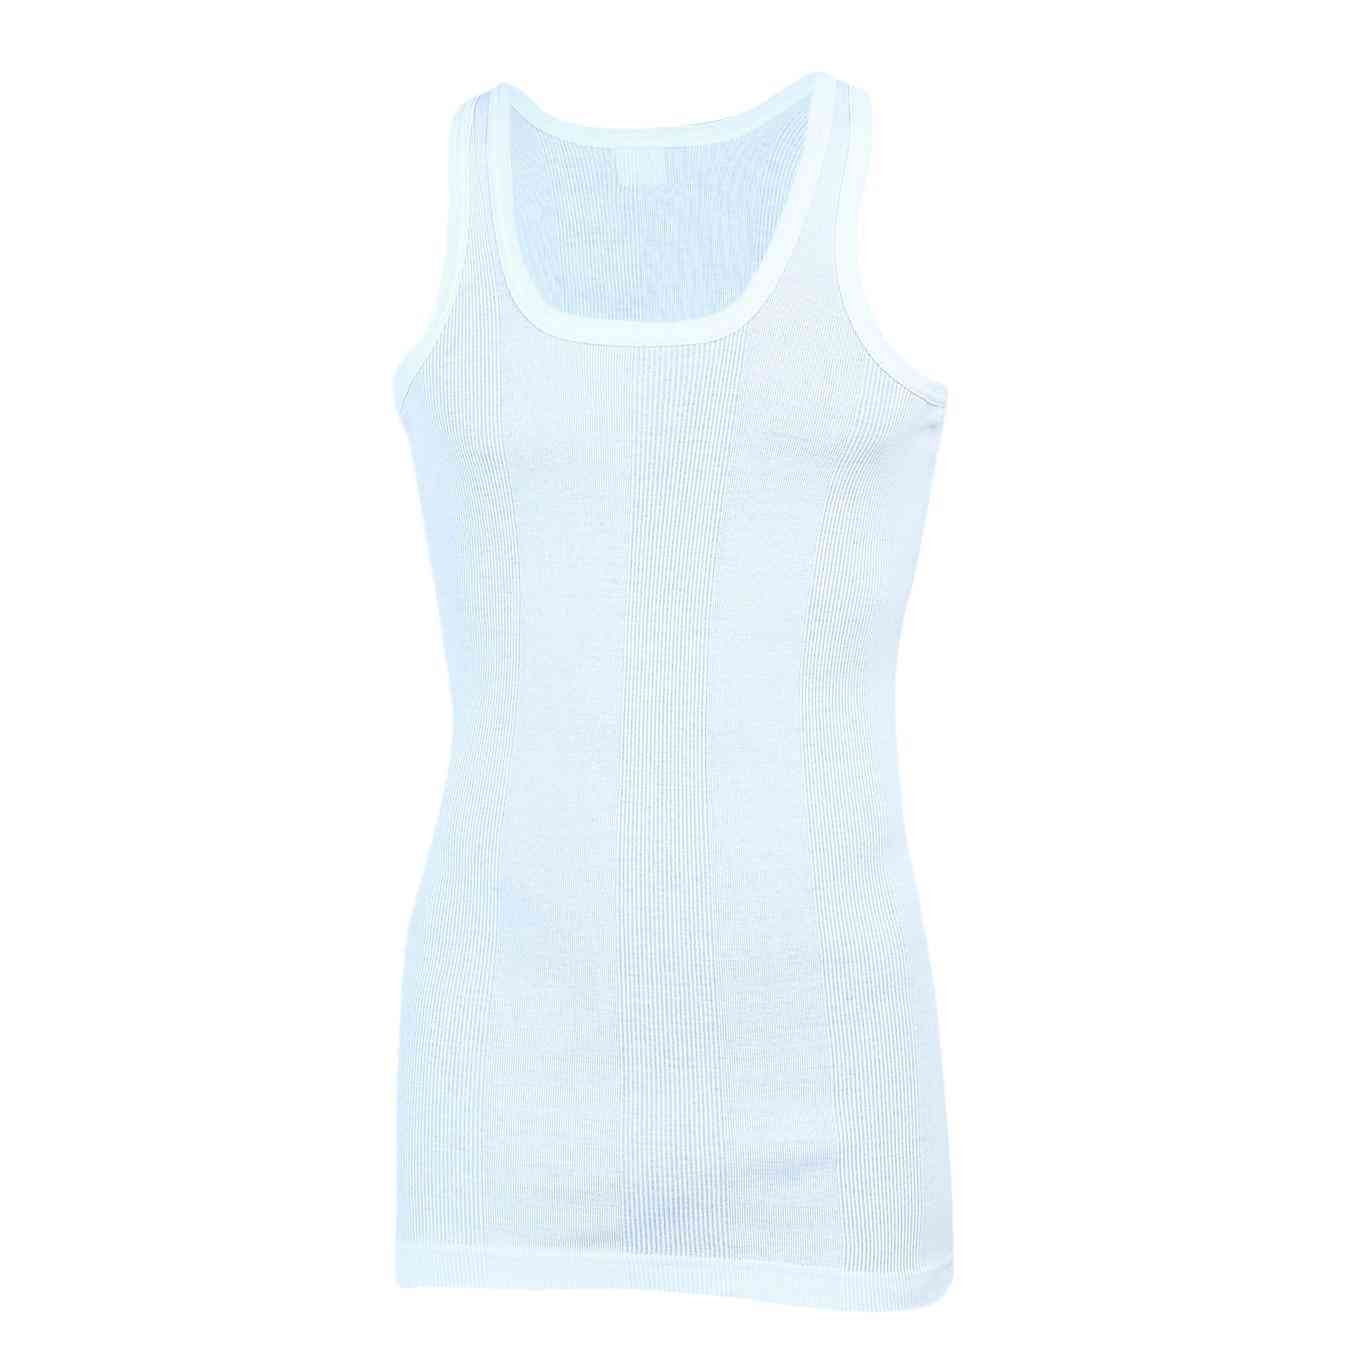 Softy Pure Cotton Ribbed Vest for Men - White